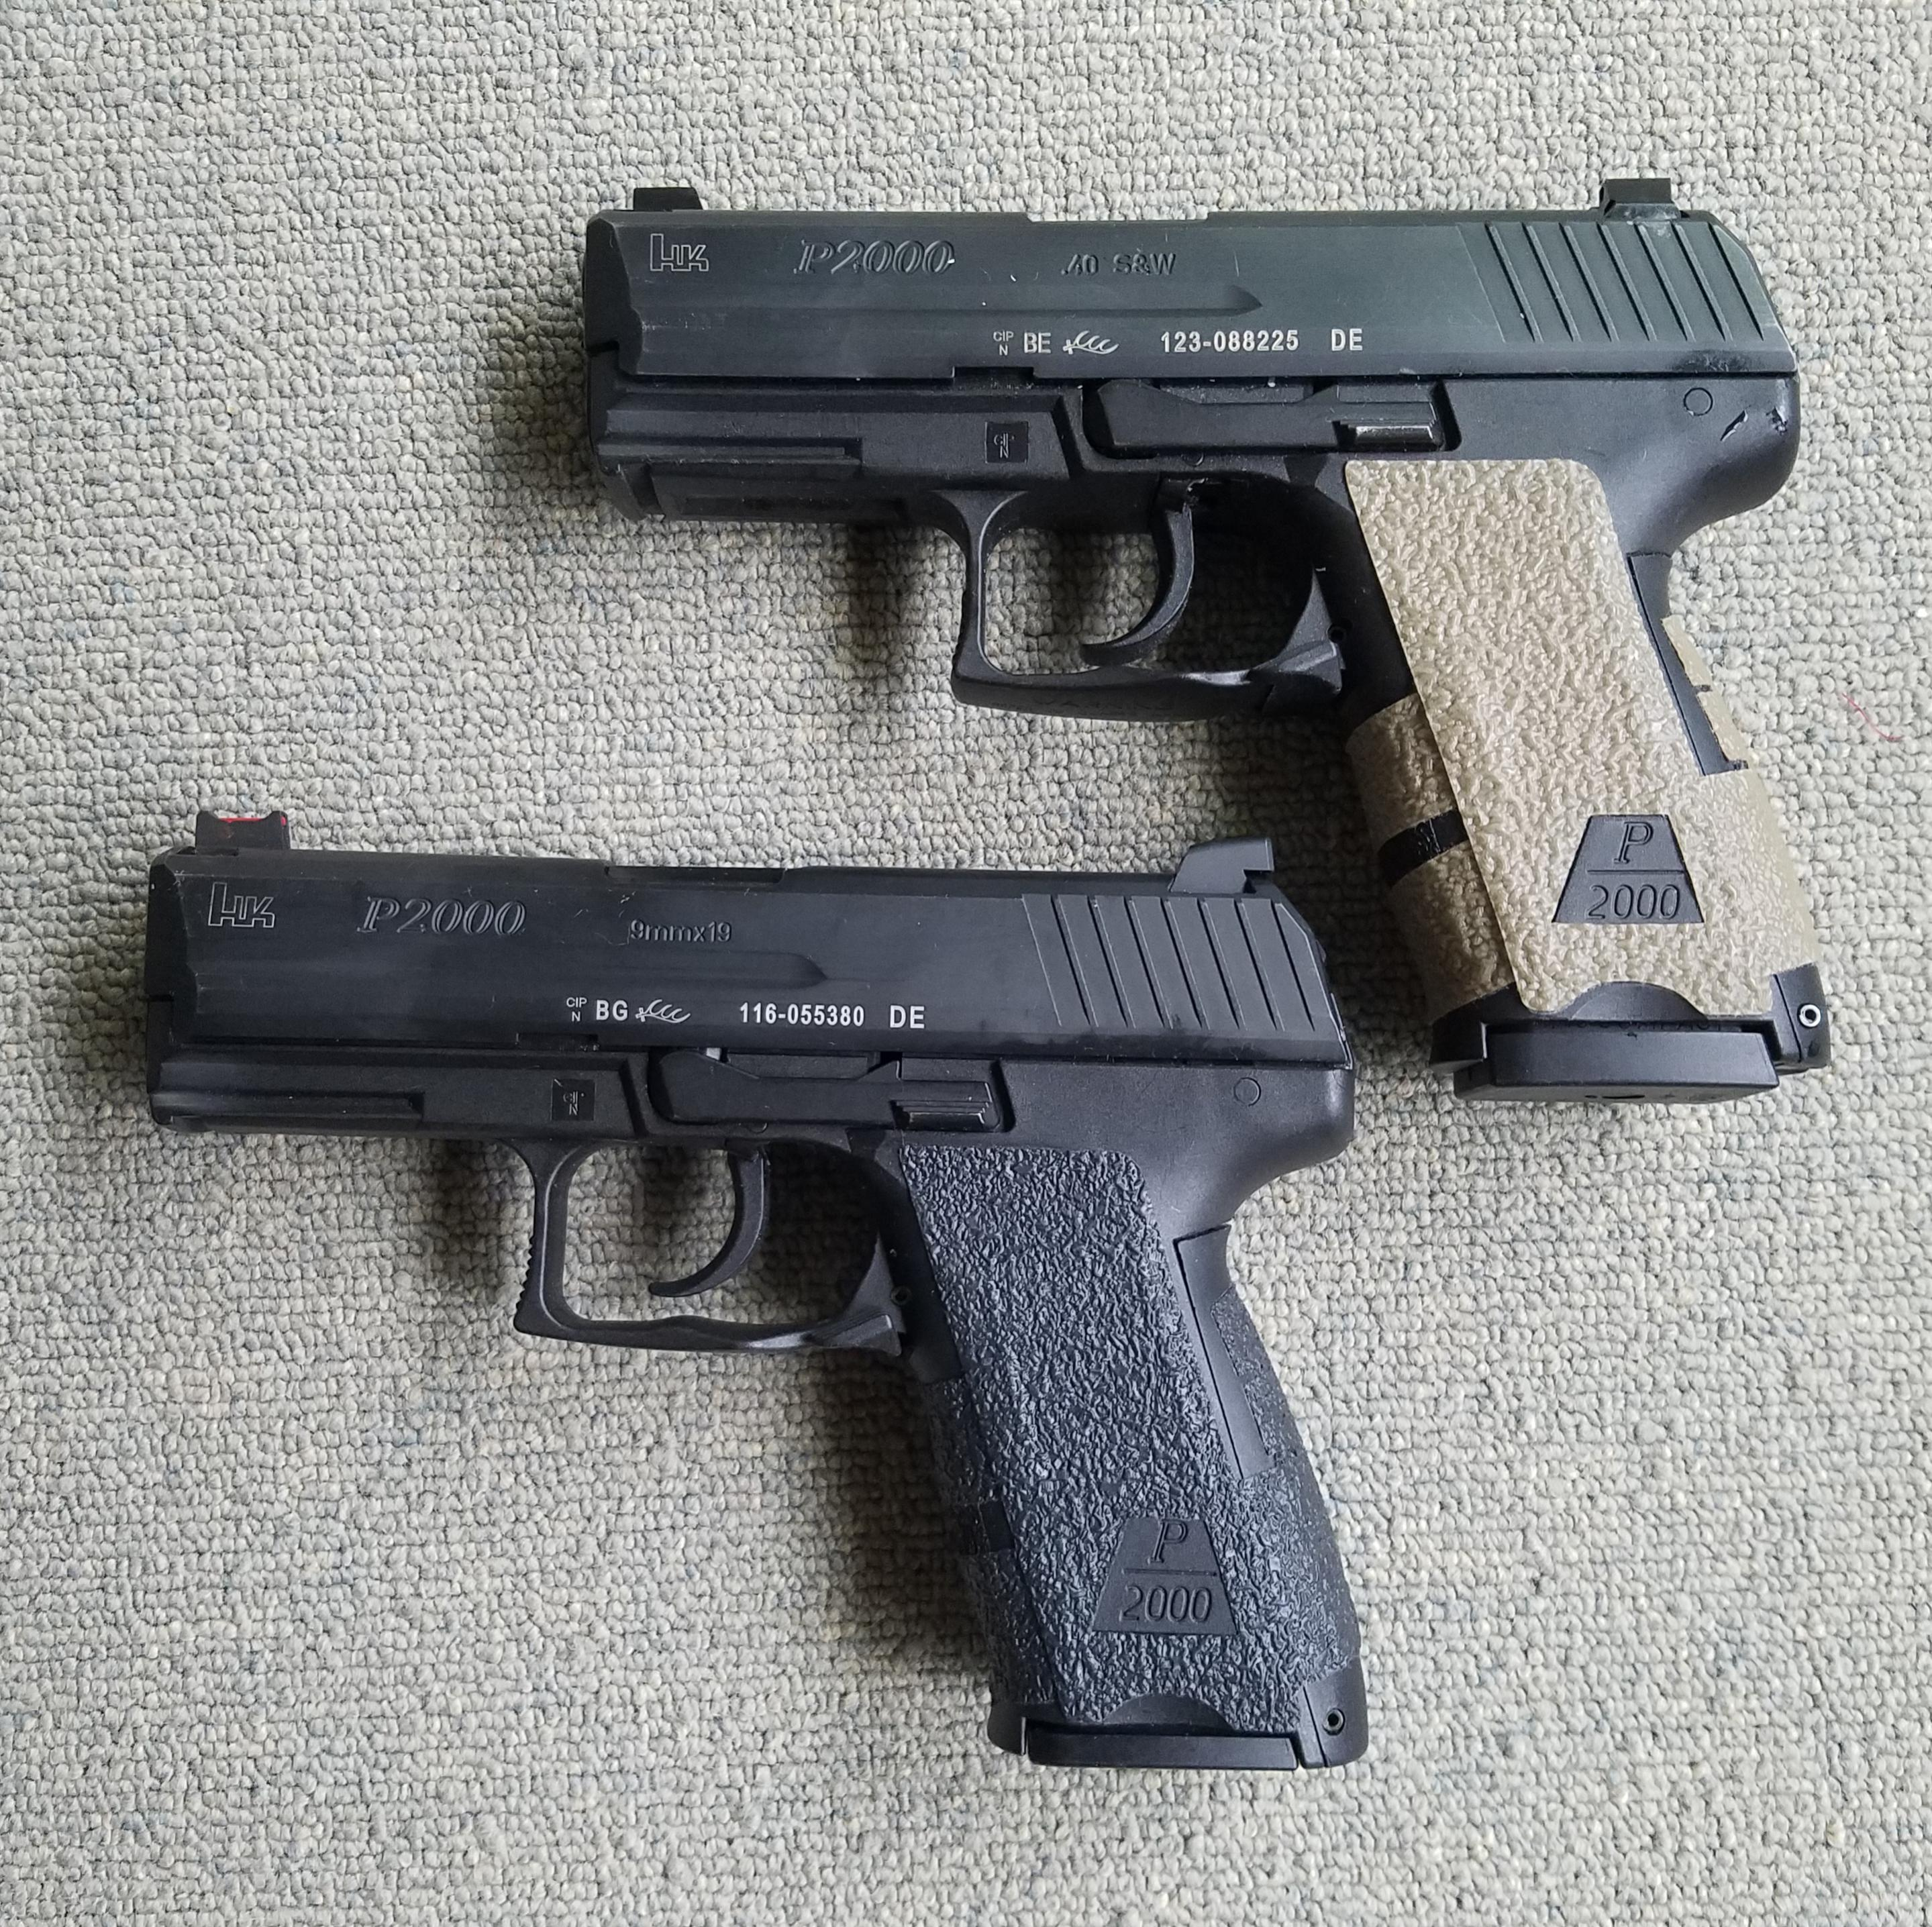 P2000 or USP 9mm? - Page 2